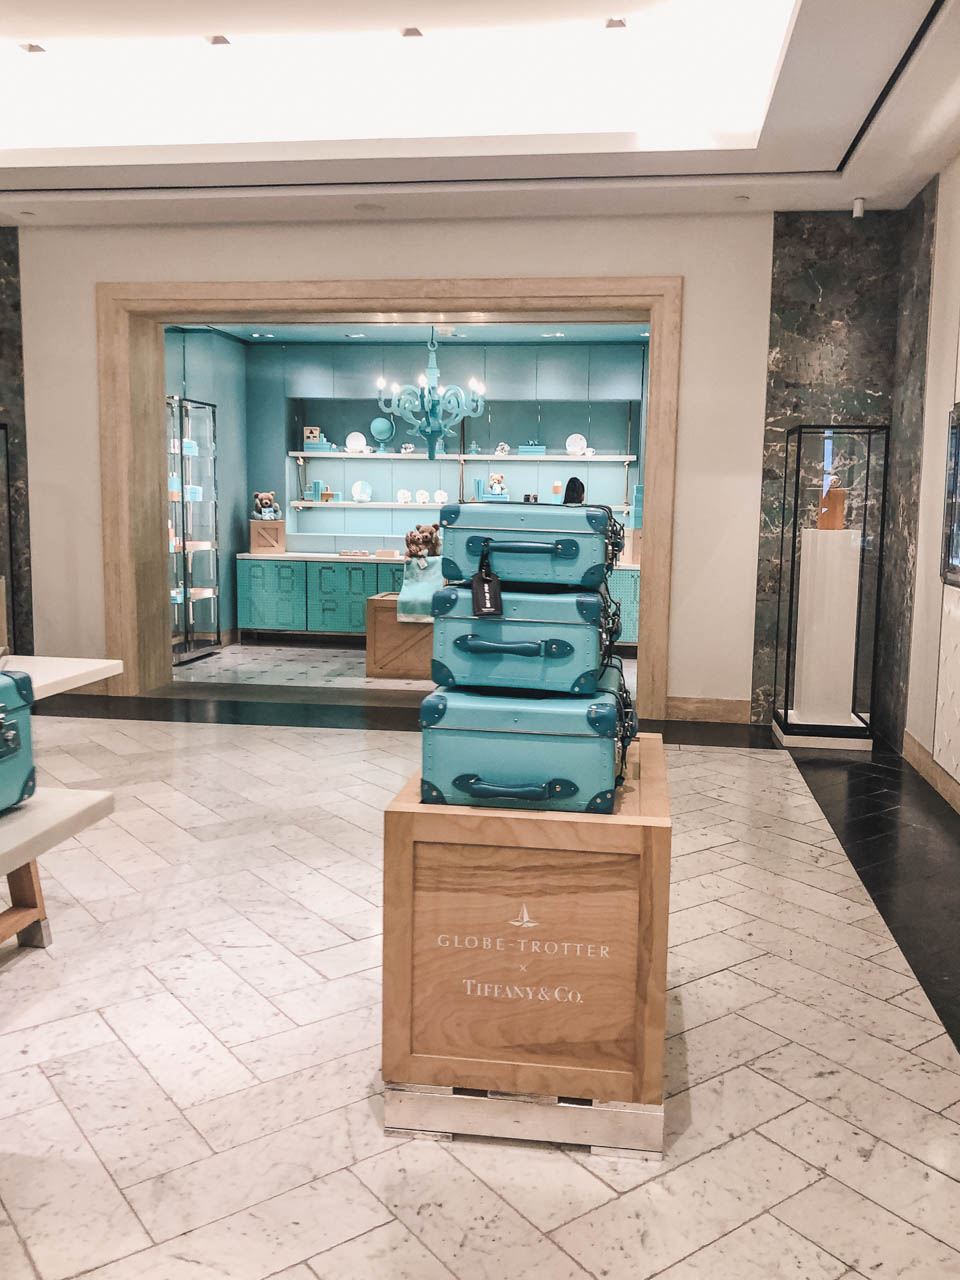 A display of suitcases at Tiffany's store on Fifth Avenue